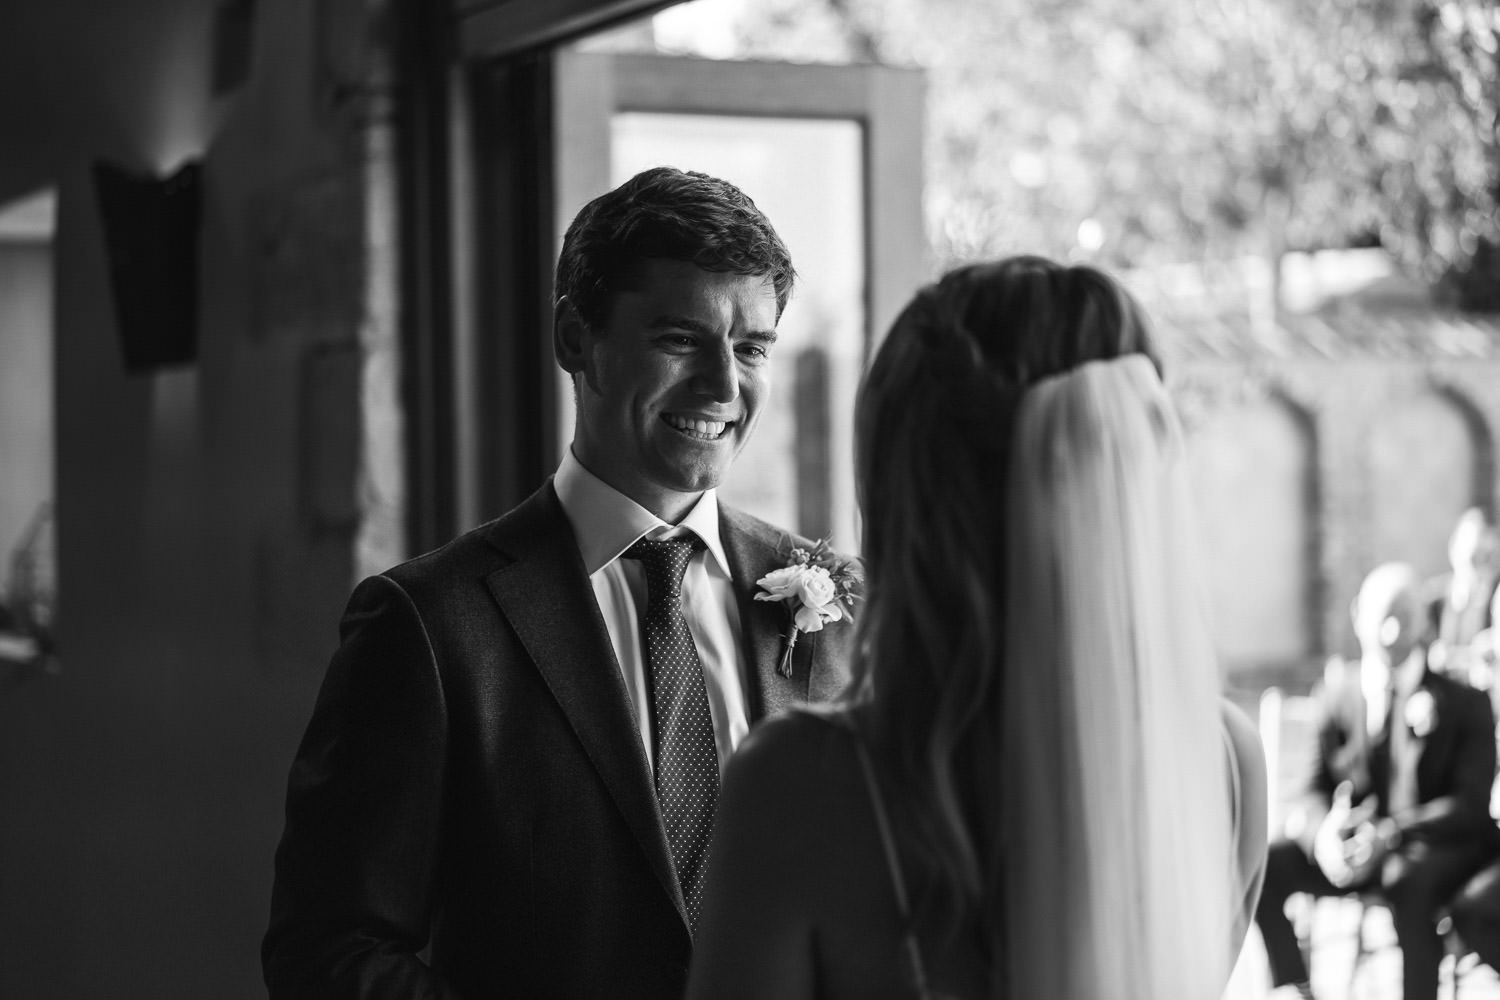 wedding vows in oxleaze barn wedding by london wedding photographer